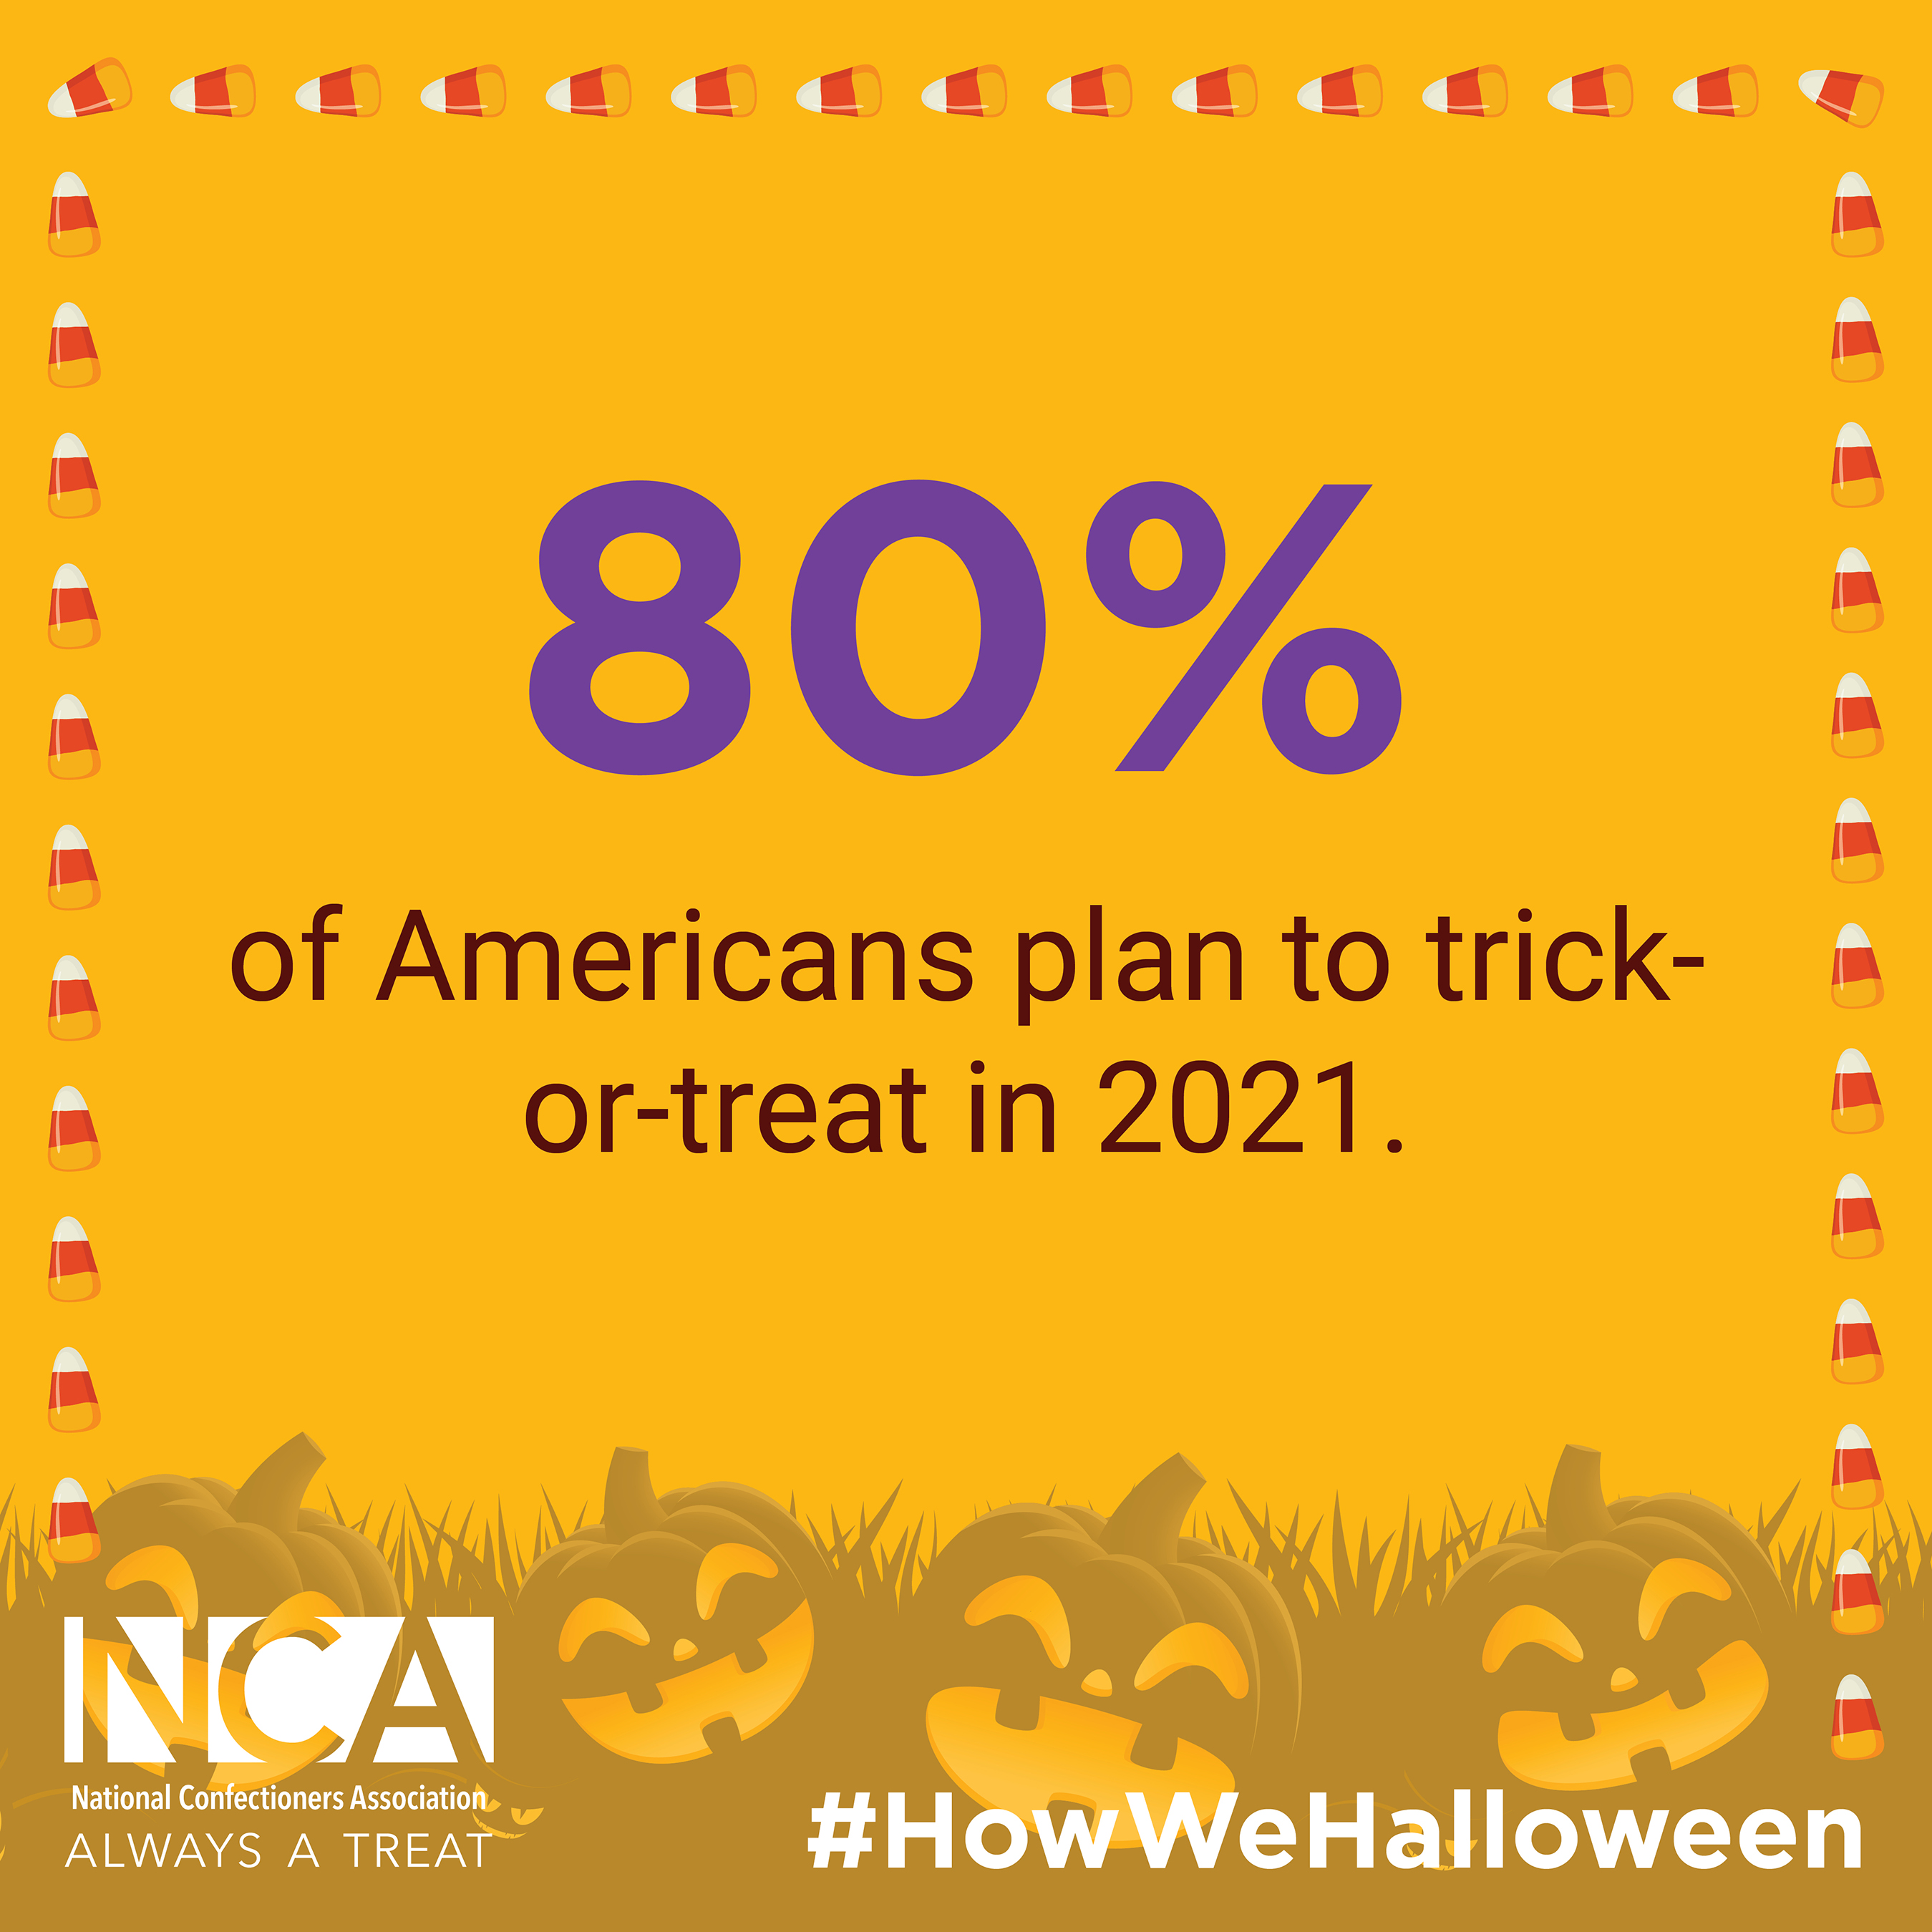 80% of Americans plan to trick-or-treat in 2021.